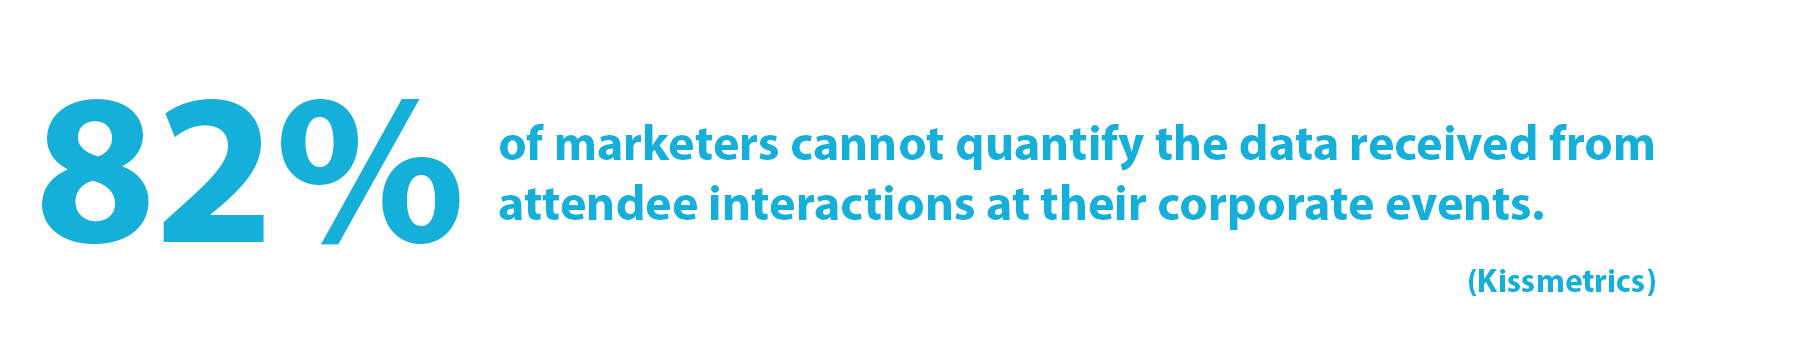 Statistic: 82% of marketers cannot quantify the data received from attendee interactions at their corporate events. (Kissmetrics)